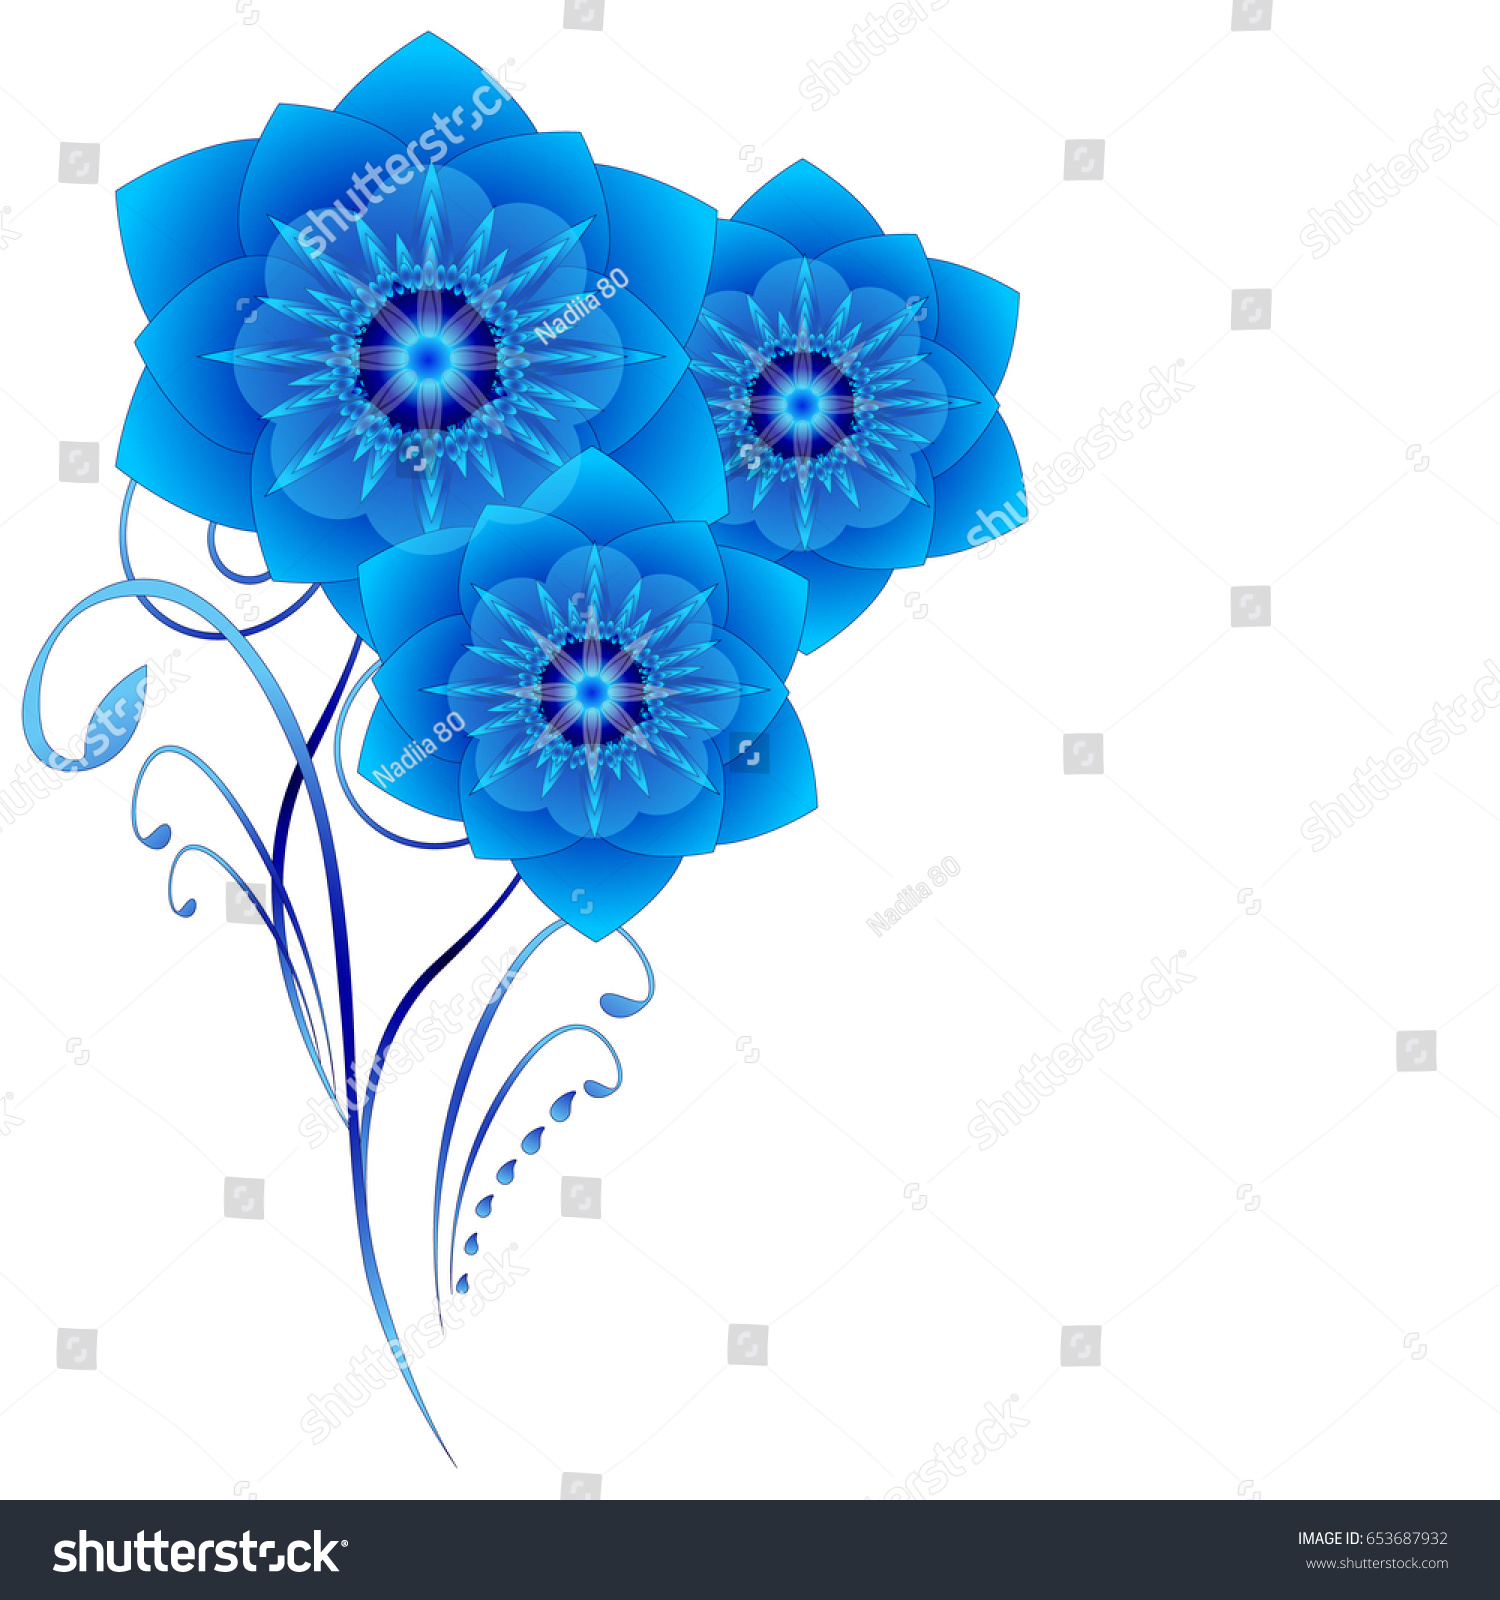 Floral background abstract blue flowers on stock vector royalty floral background with abstract blue flowers on a white background izmirmasajfo